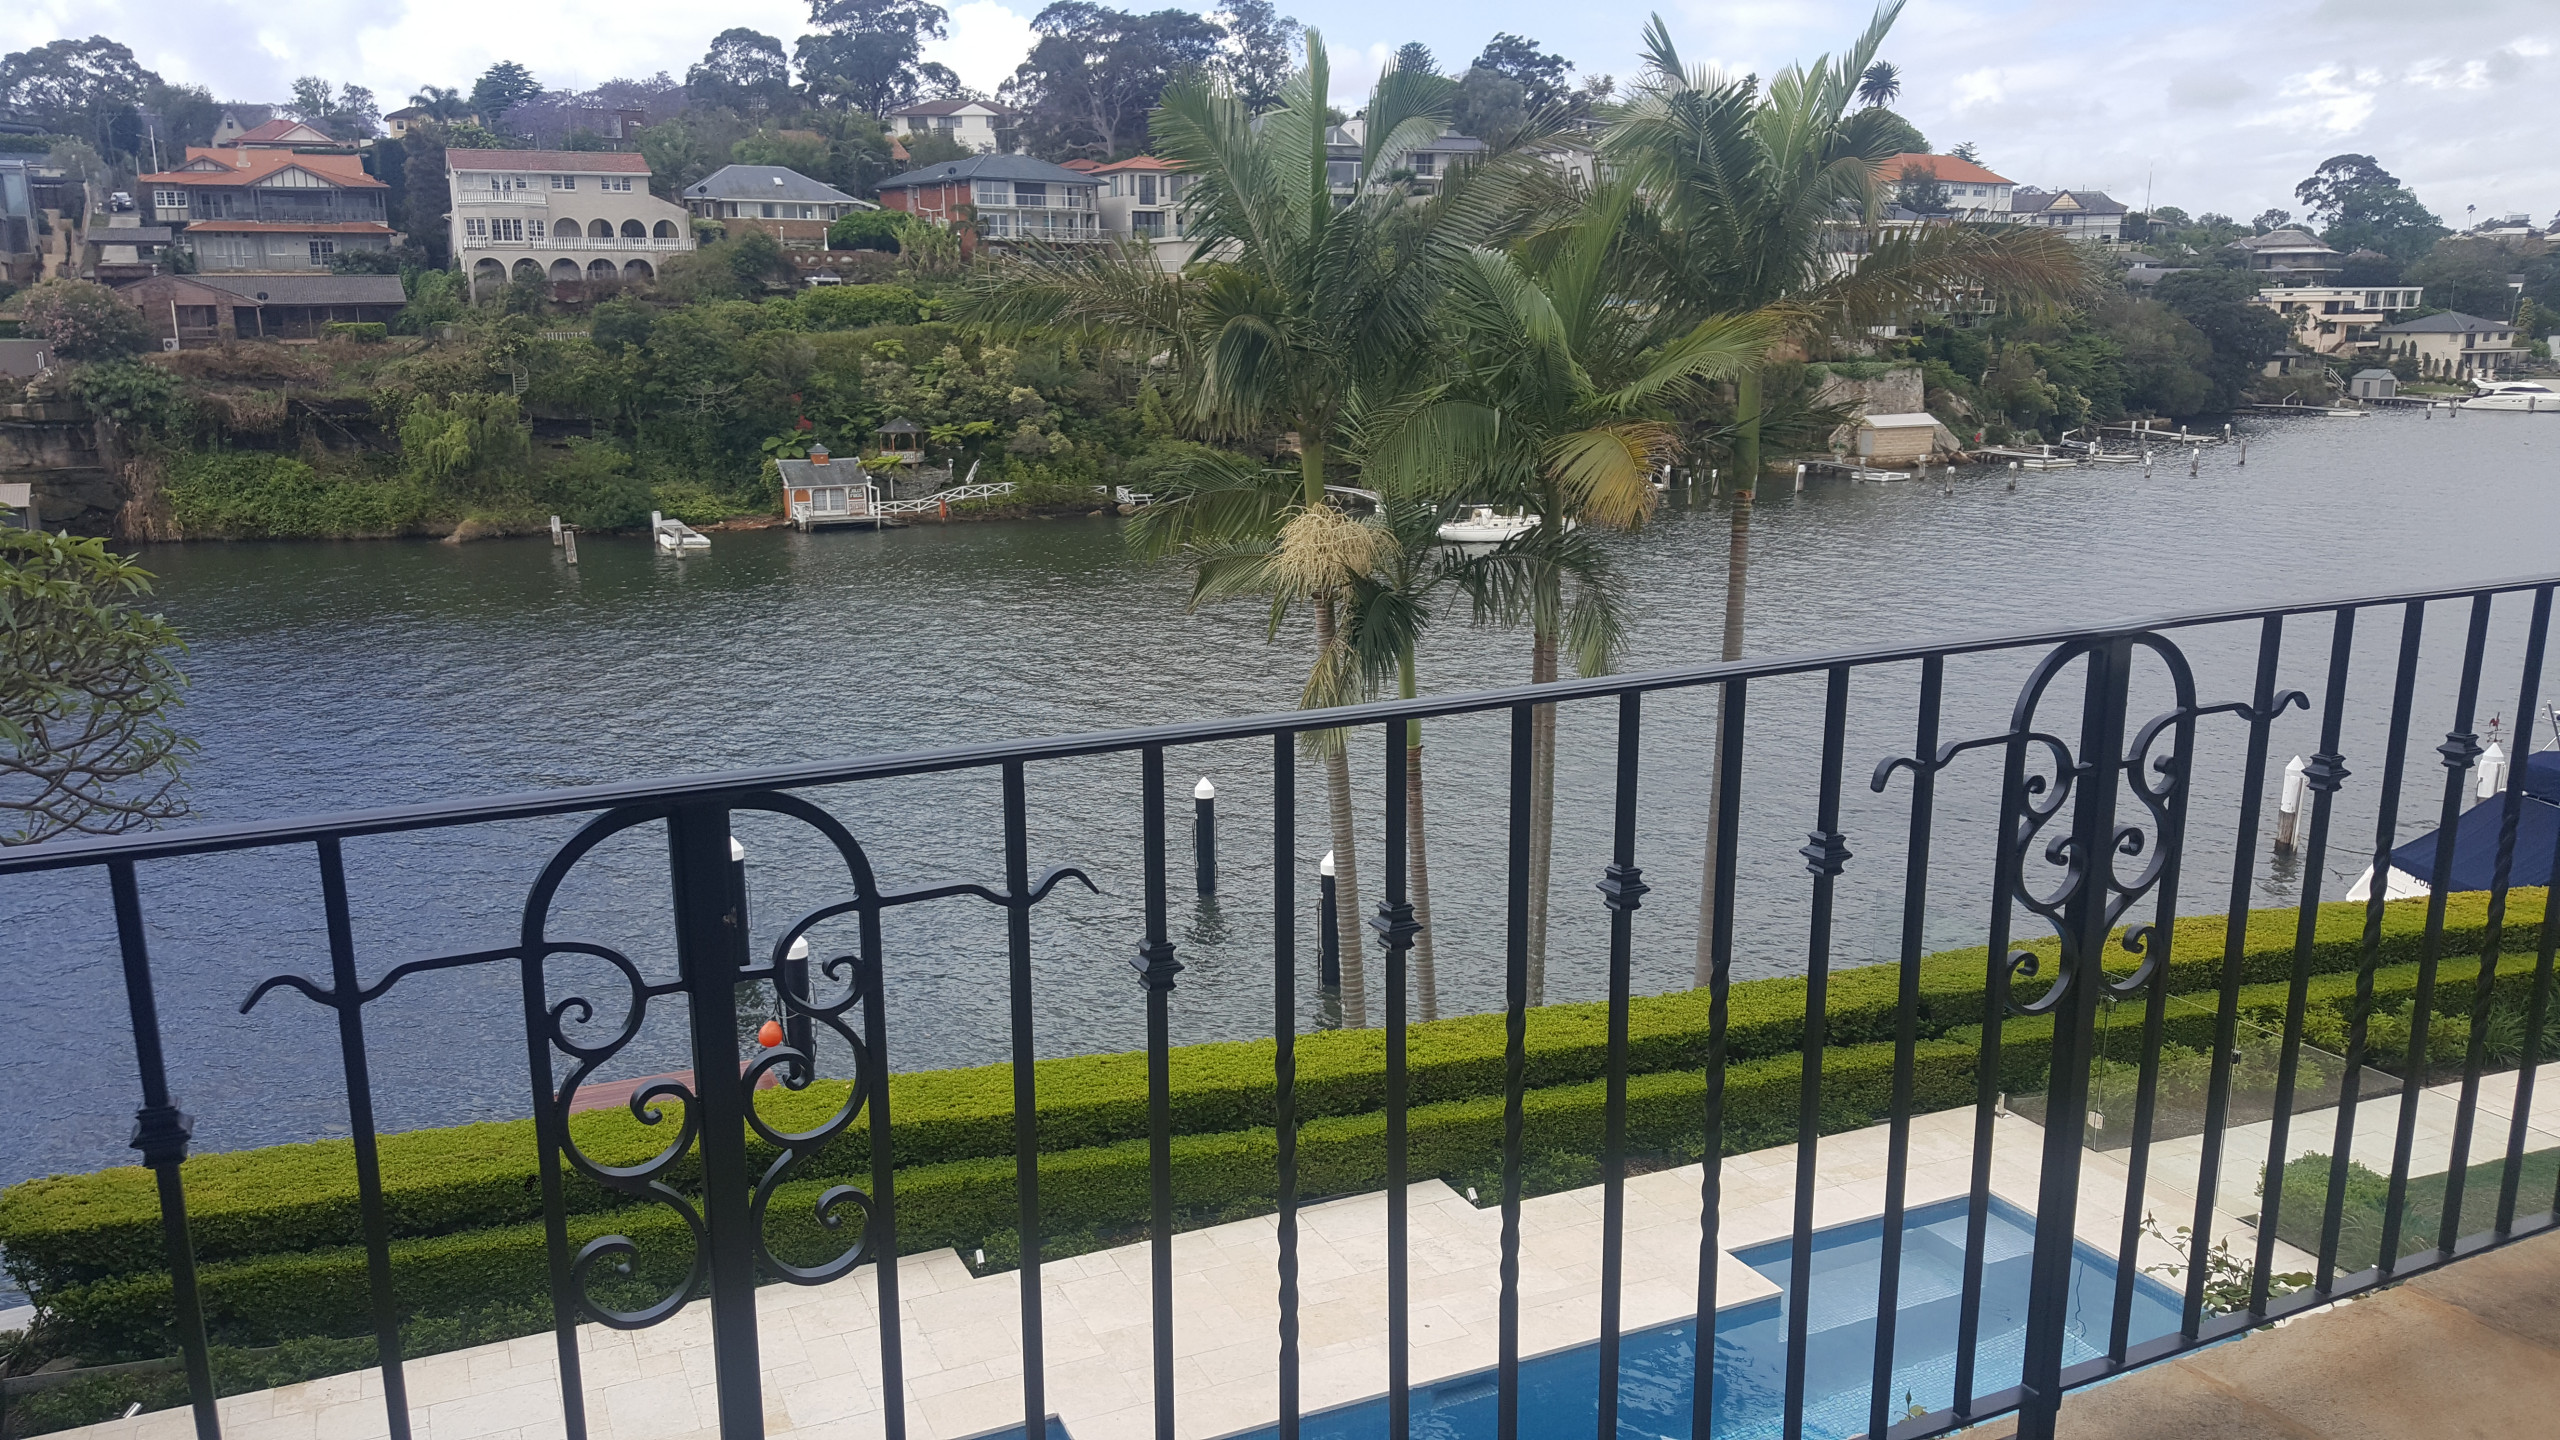 Outdoor spaces, swimming pools, tennis courts, moorings